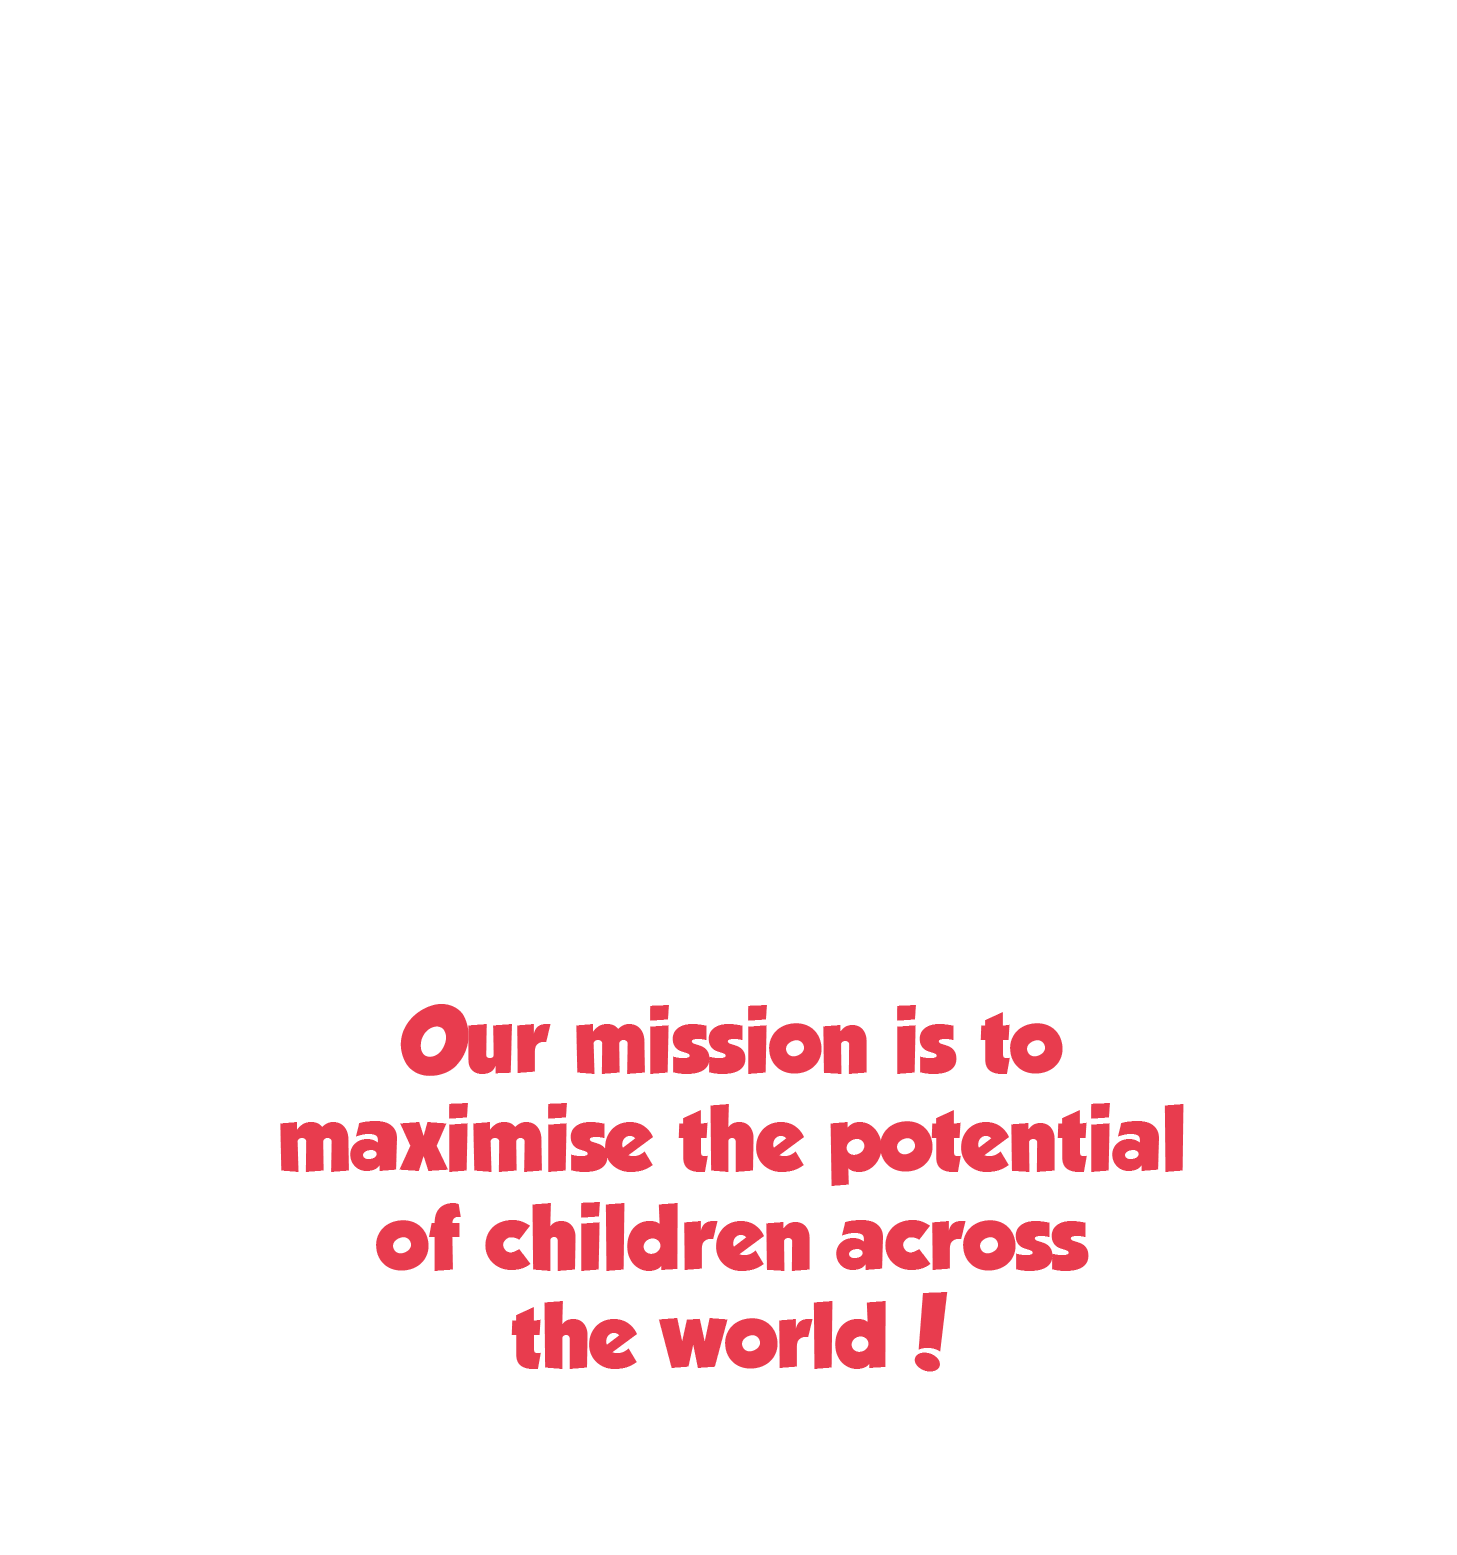 Our mission is to maximise the potential of children across the world!